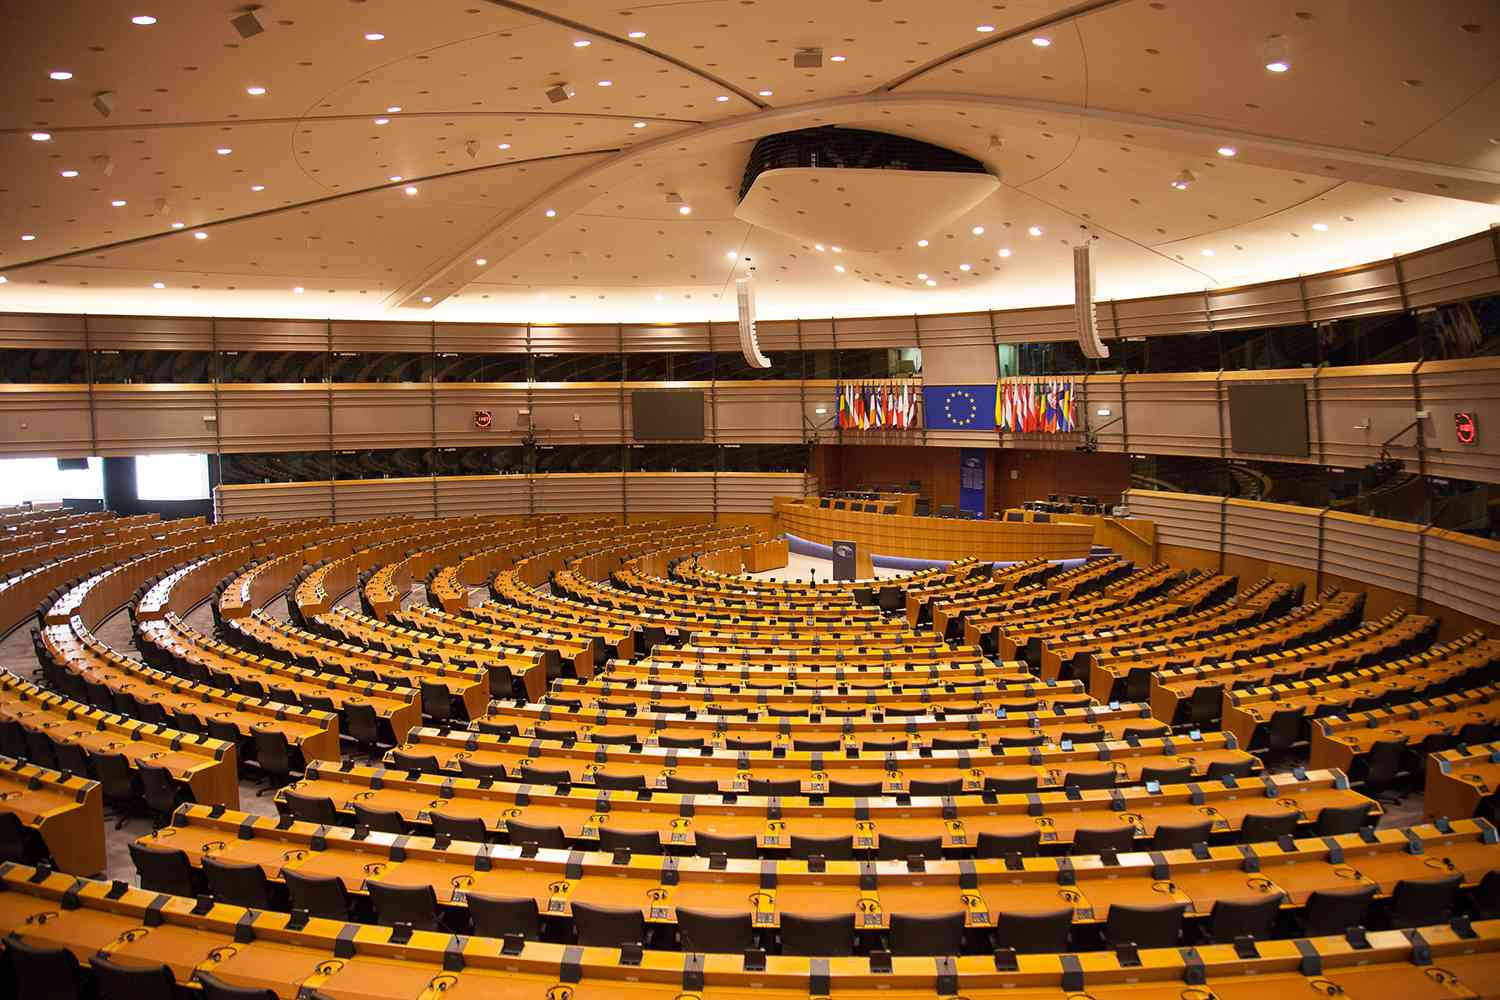 A look at the Hemicycle at European Parliament in Brussels